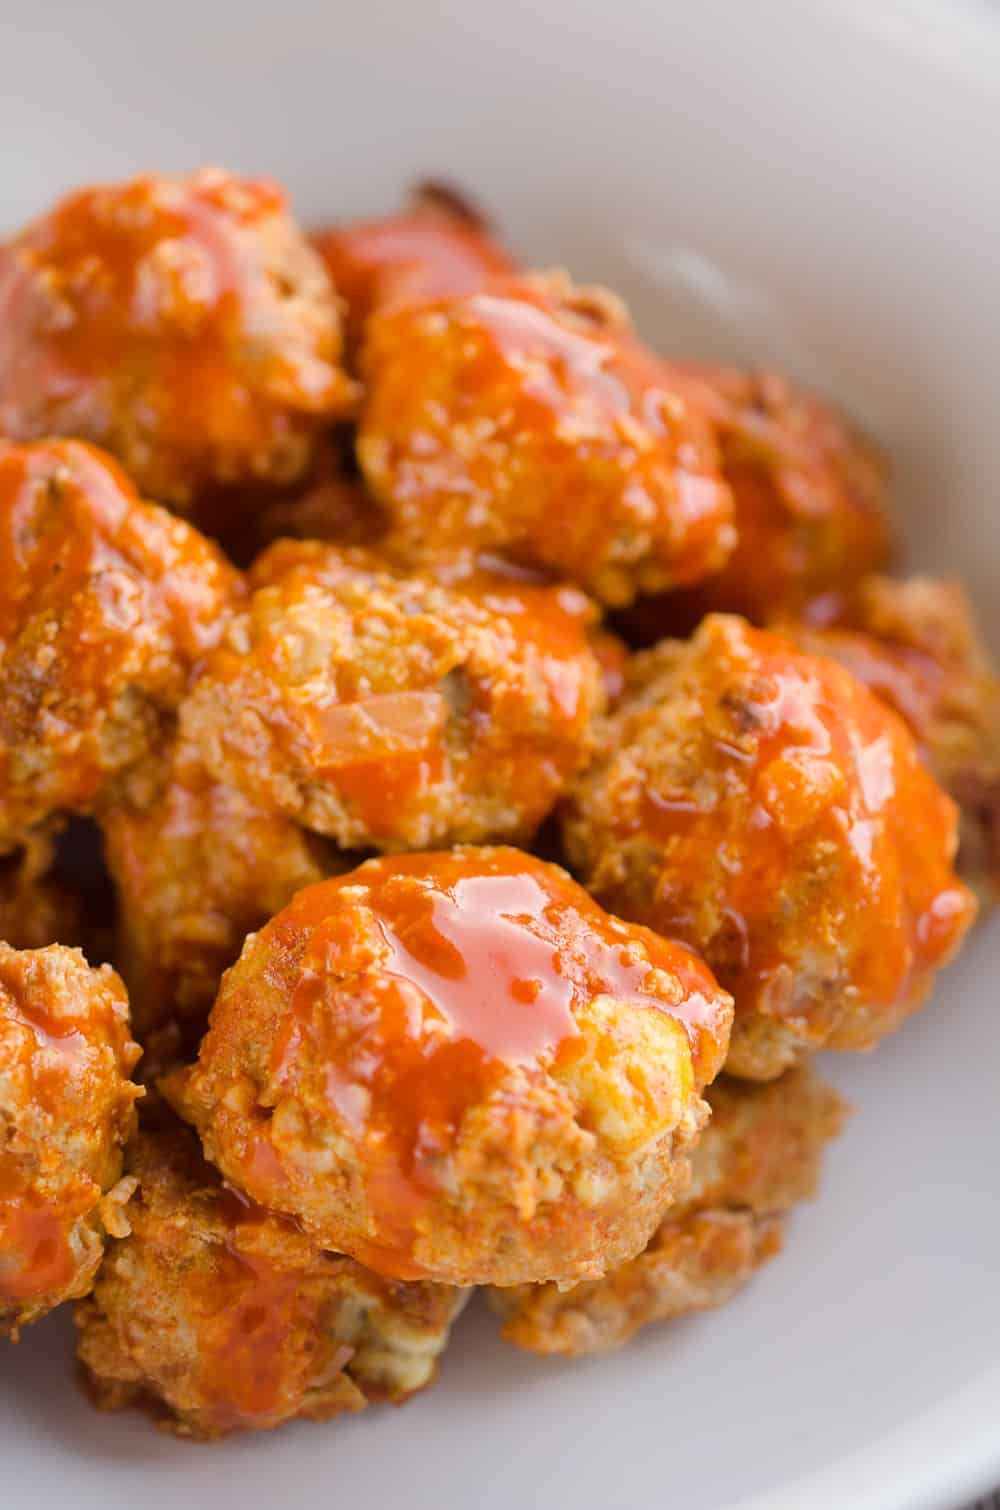 Light Crock Pot Buffalo Turkey Meatballs are an easy recipe made in your slow cooker bursting with bold flavor from spicy buffalo sauce and bleu cheese crumbles! Serve them as an appetizer on game day or pair them with a side of rice and veggies for a flavorful dinner.